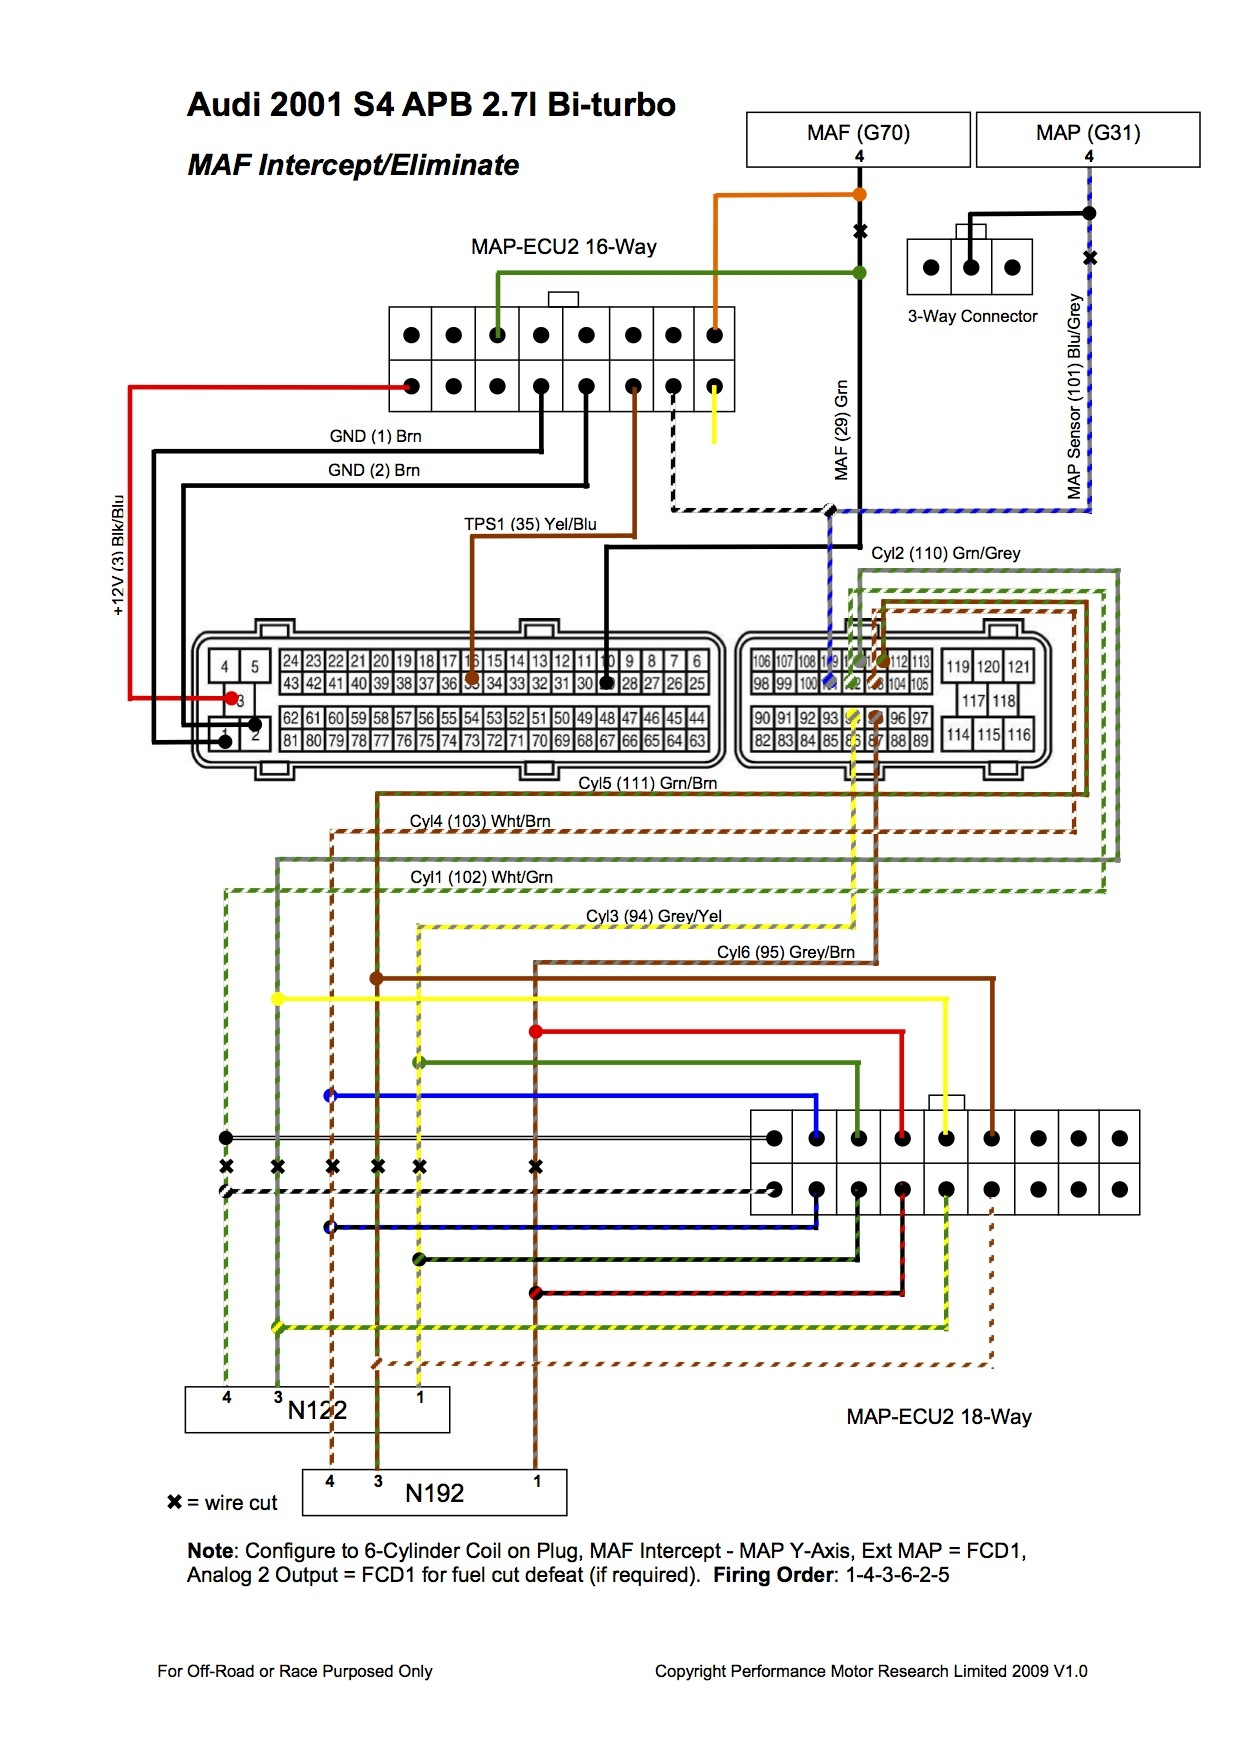 1998 Dodge Ram 1500 Wiring Schematic | Free Wiring Diagram